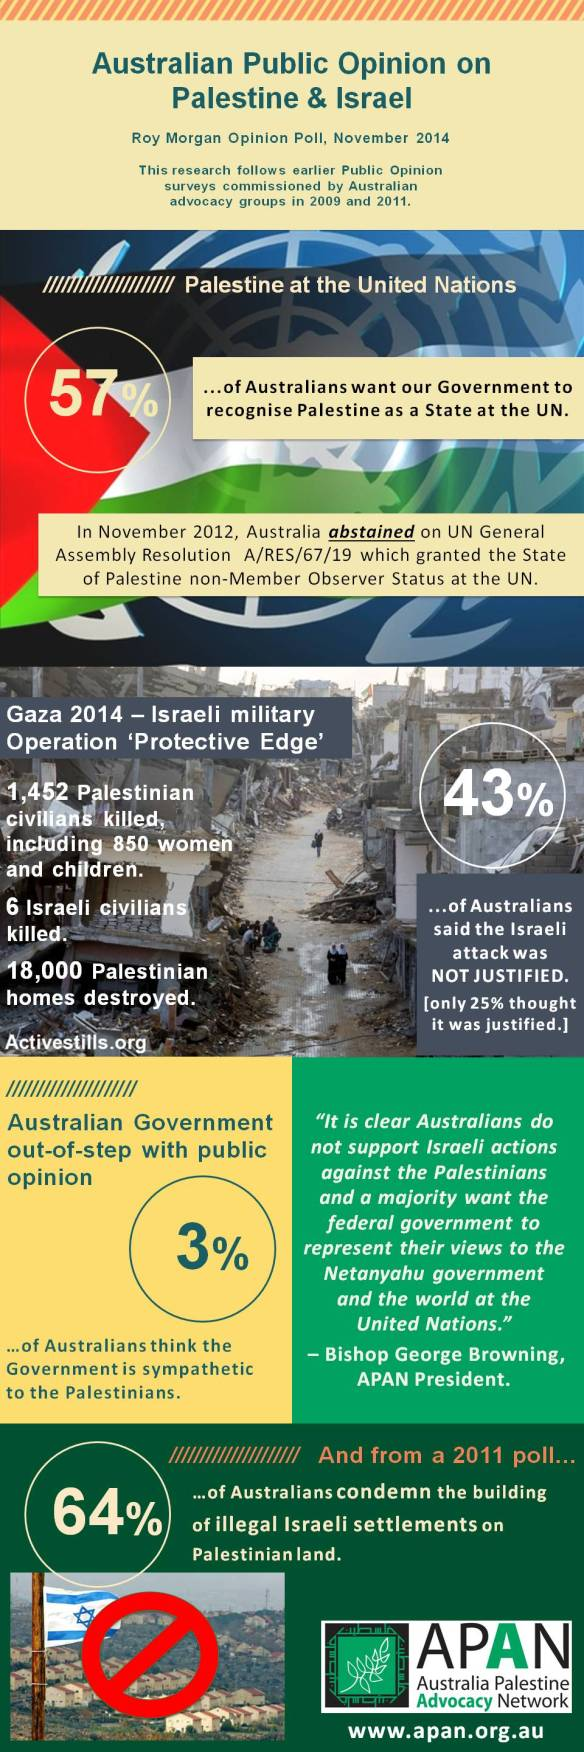 infographic-opinion-poll-2014